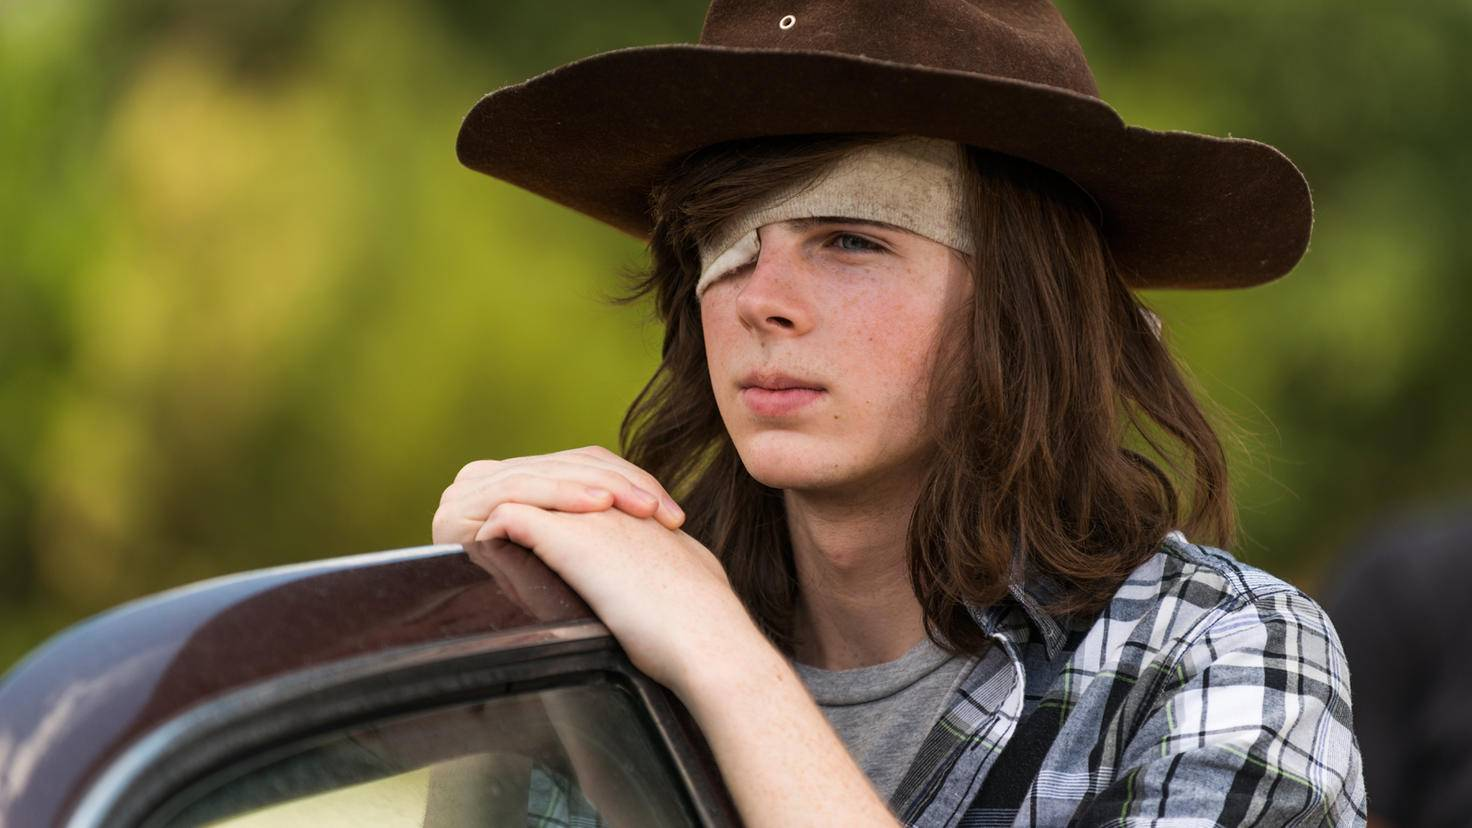 Carl Grimes-Chandler Riggs-The Walking Dead-Gene PageAMC-TWD_705_GP_0620_0084-RT